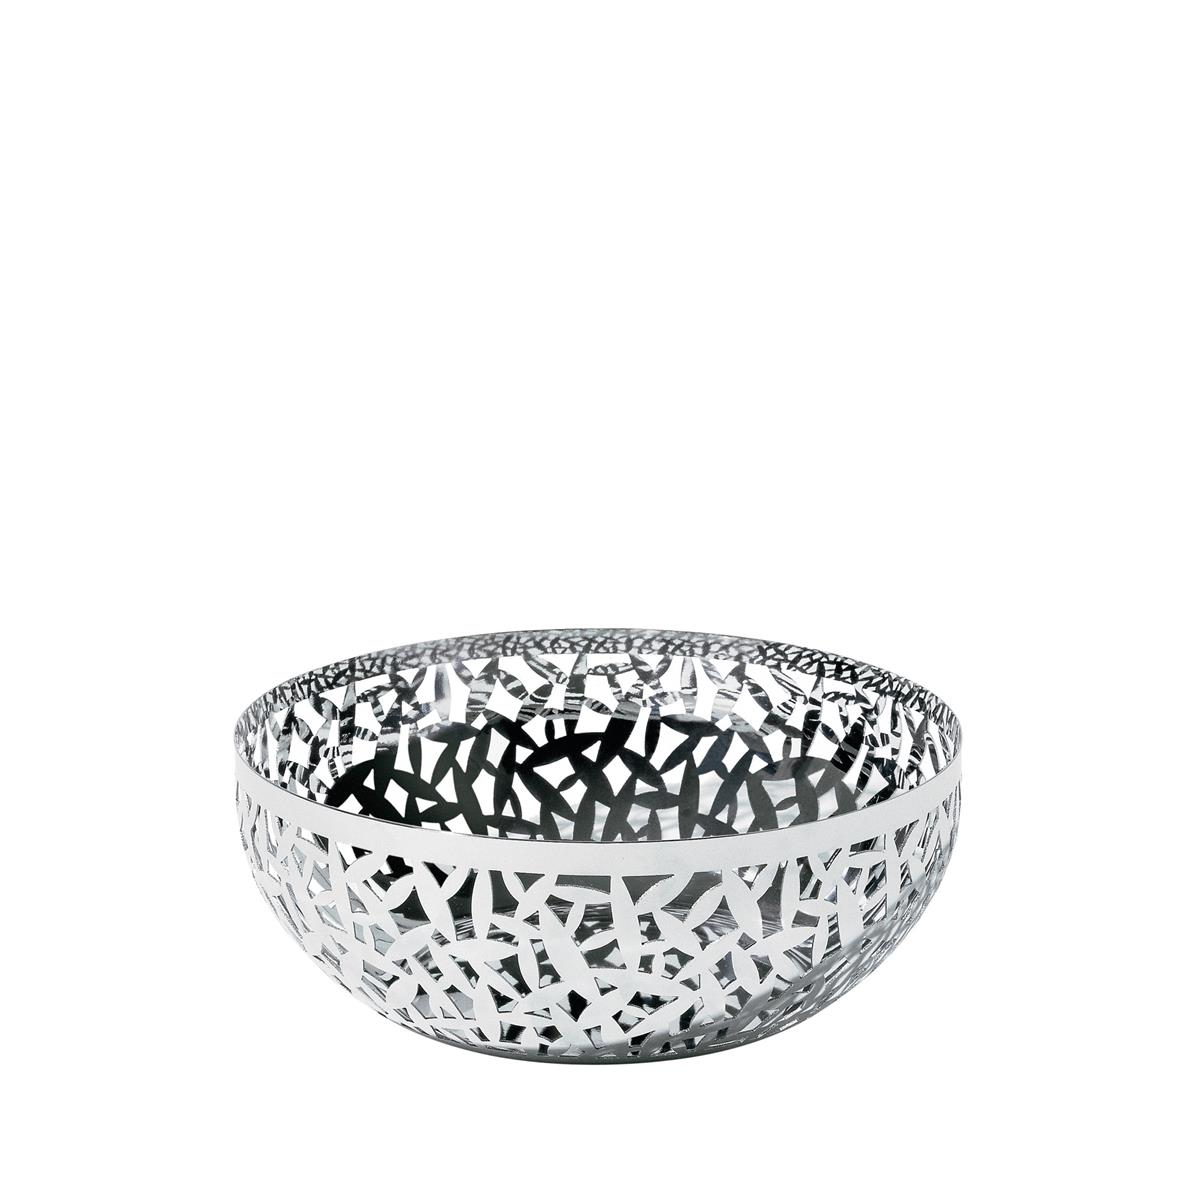 Alessi-La Stanza dello Scirocco Fruit bowl in colored steel and resin, white